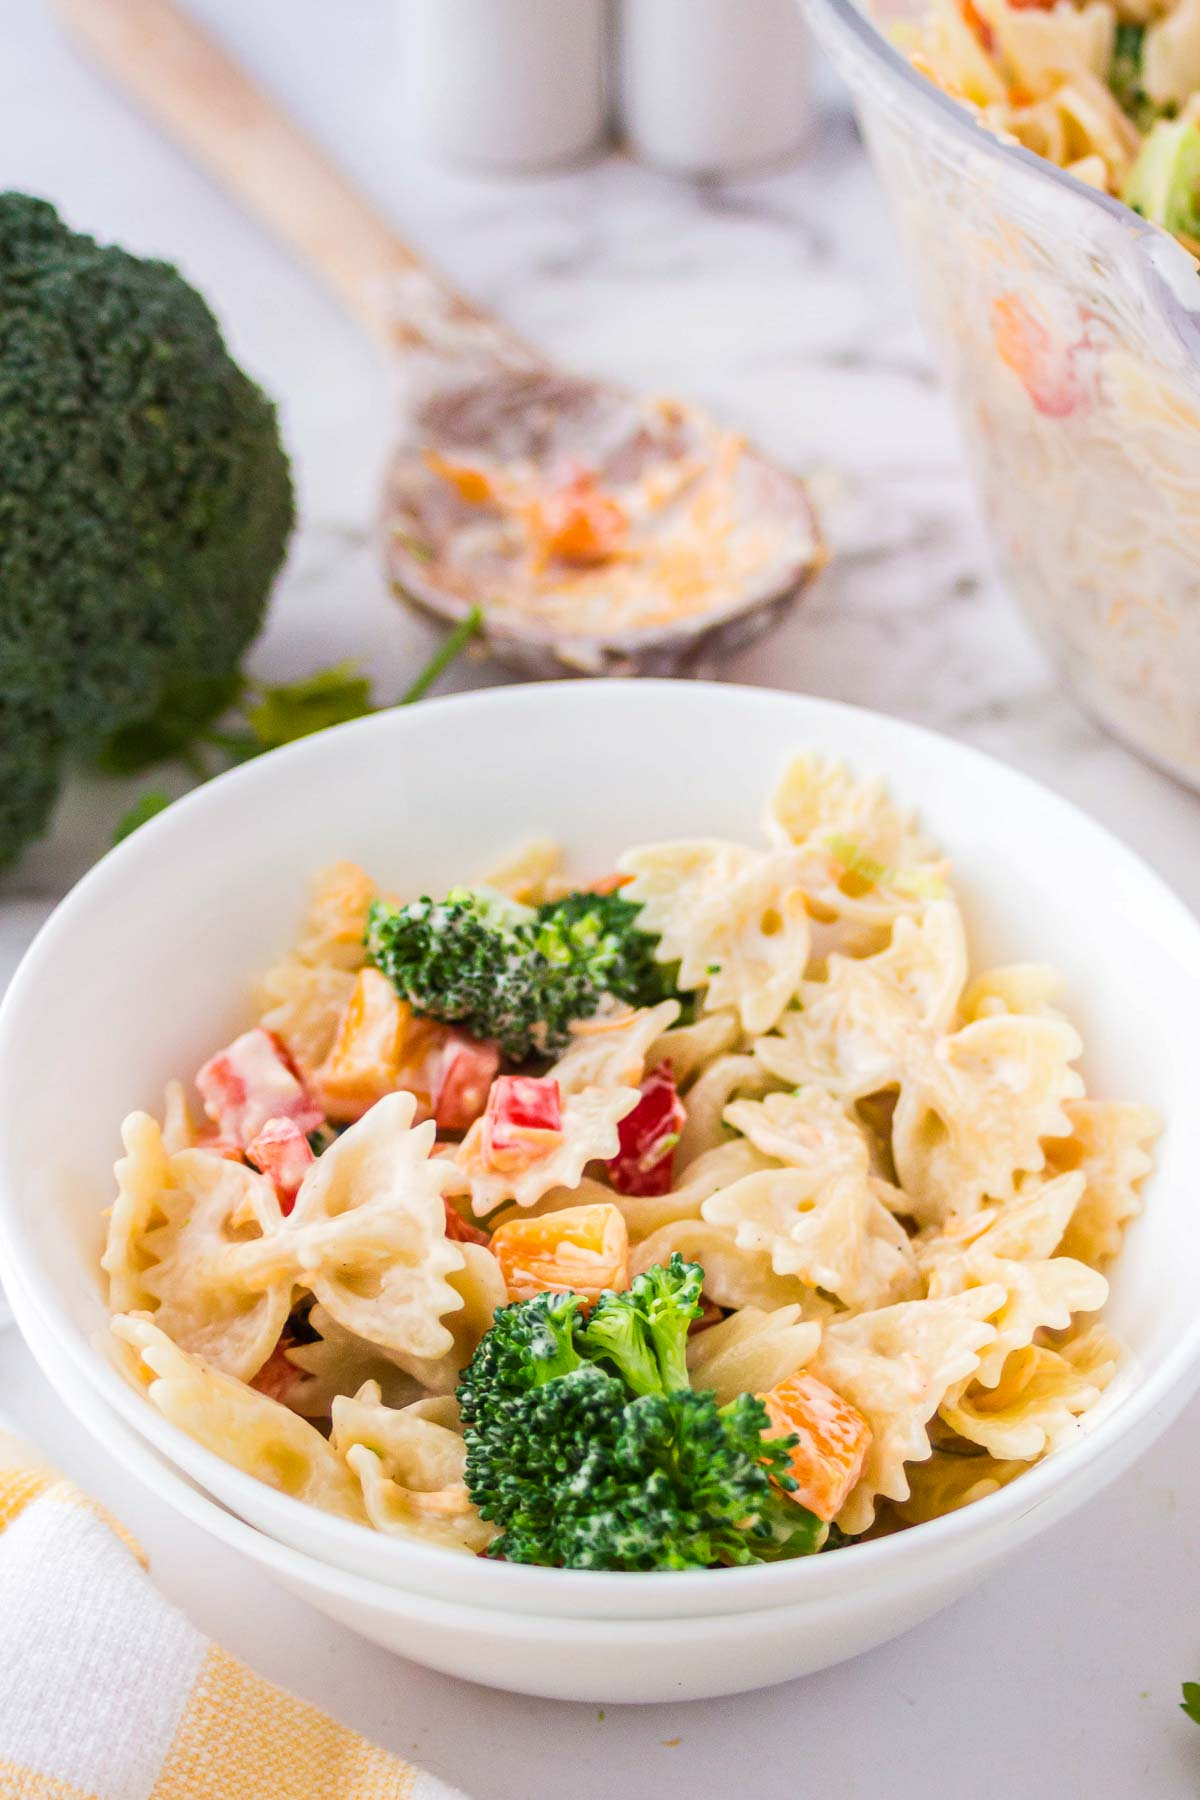 Bow tie pasta salad with broccoli in a bowl.